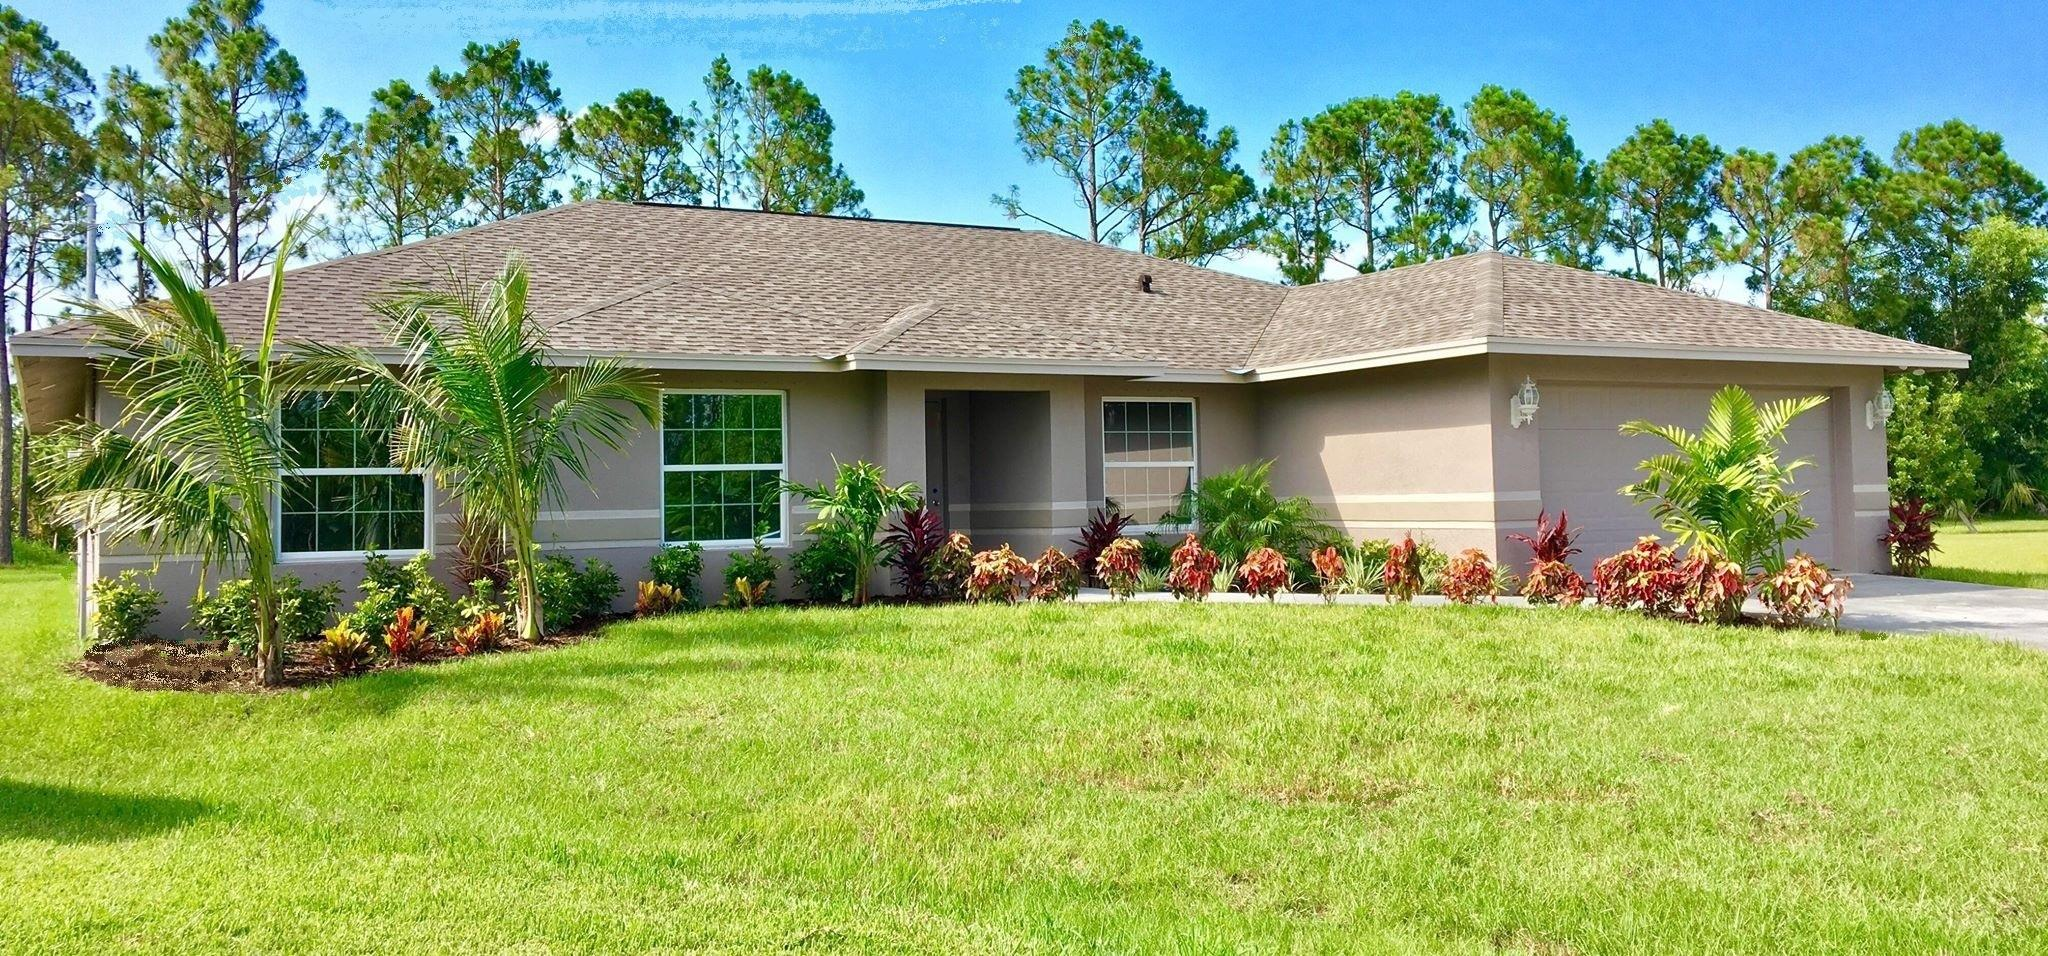 5678 NW Athens Court, Port Saint Lucie, Florida